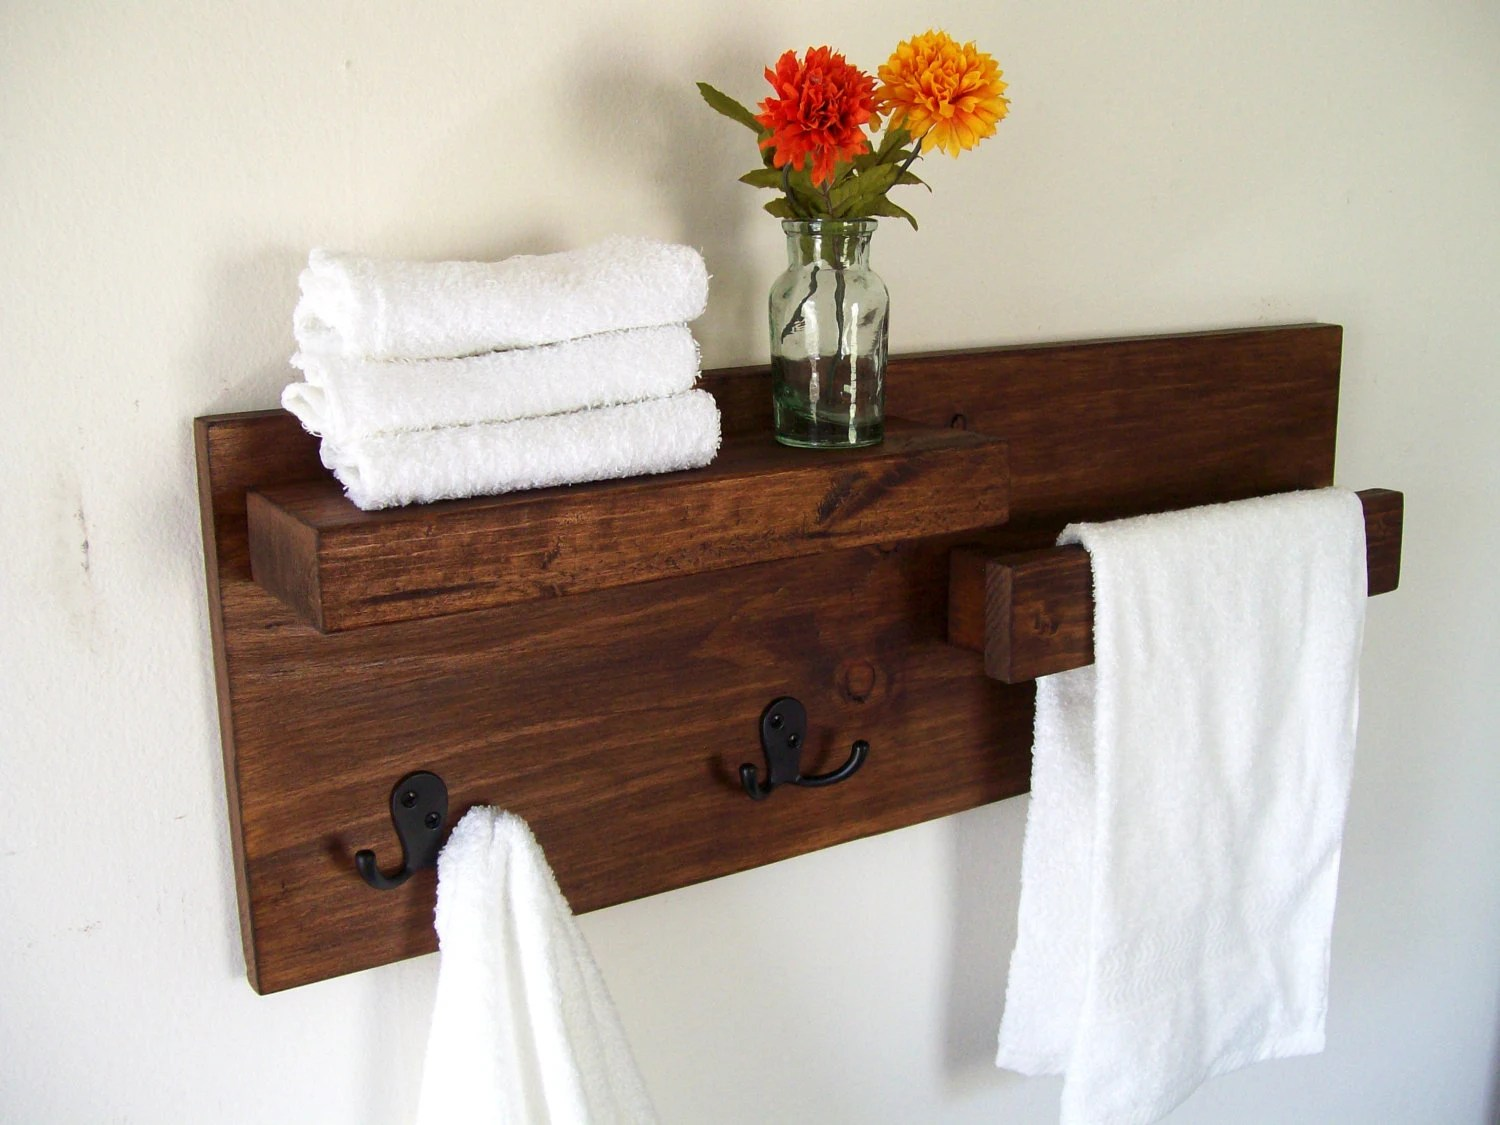 Holz Handtuchhalter Bathroom Shelves Towel Rack Towel Bar Wood Shelf Bathroom